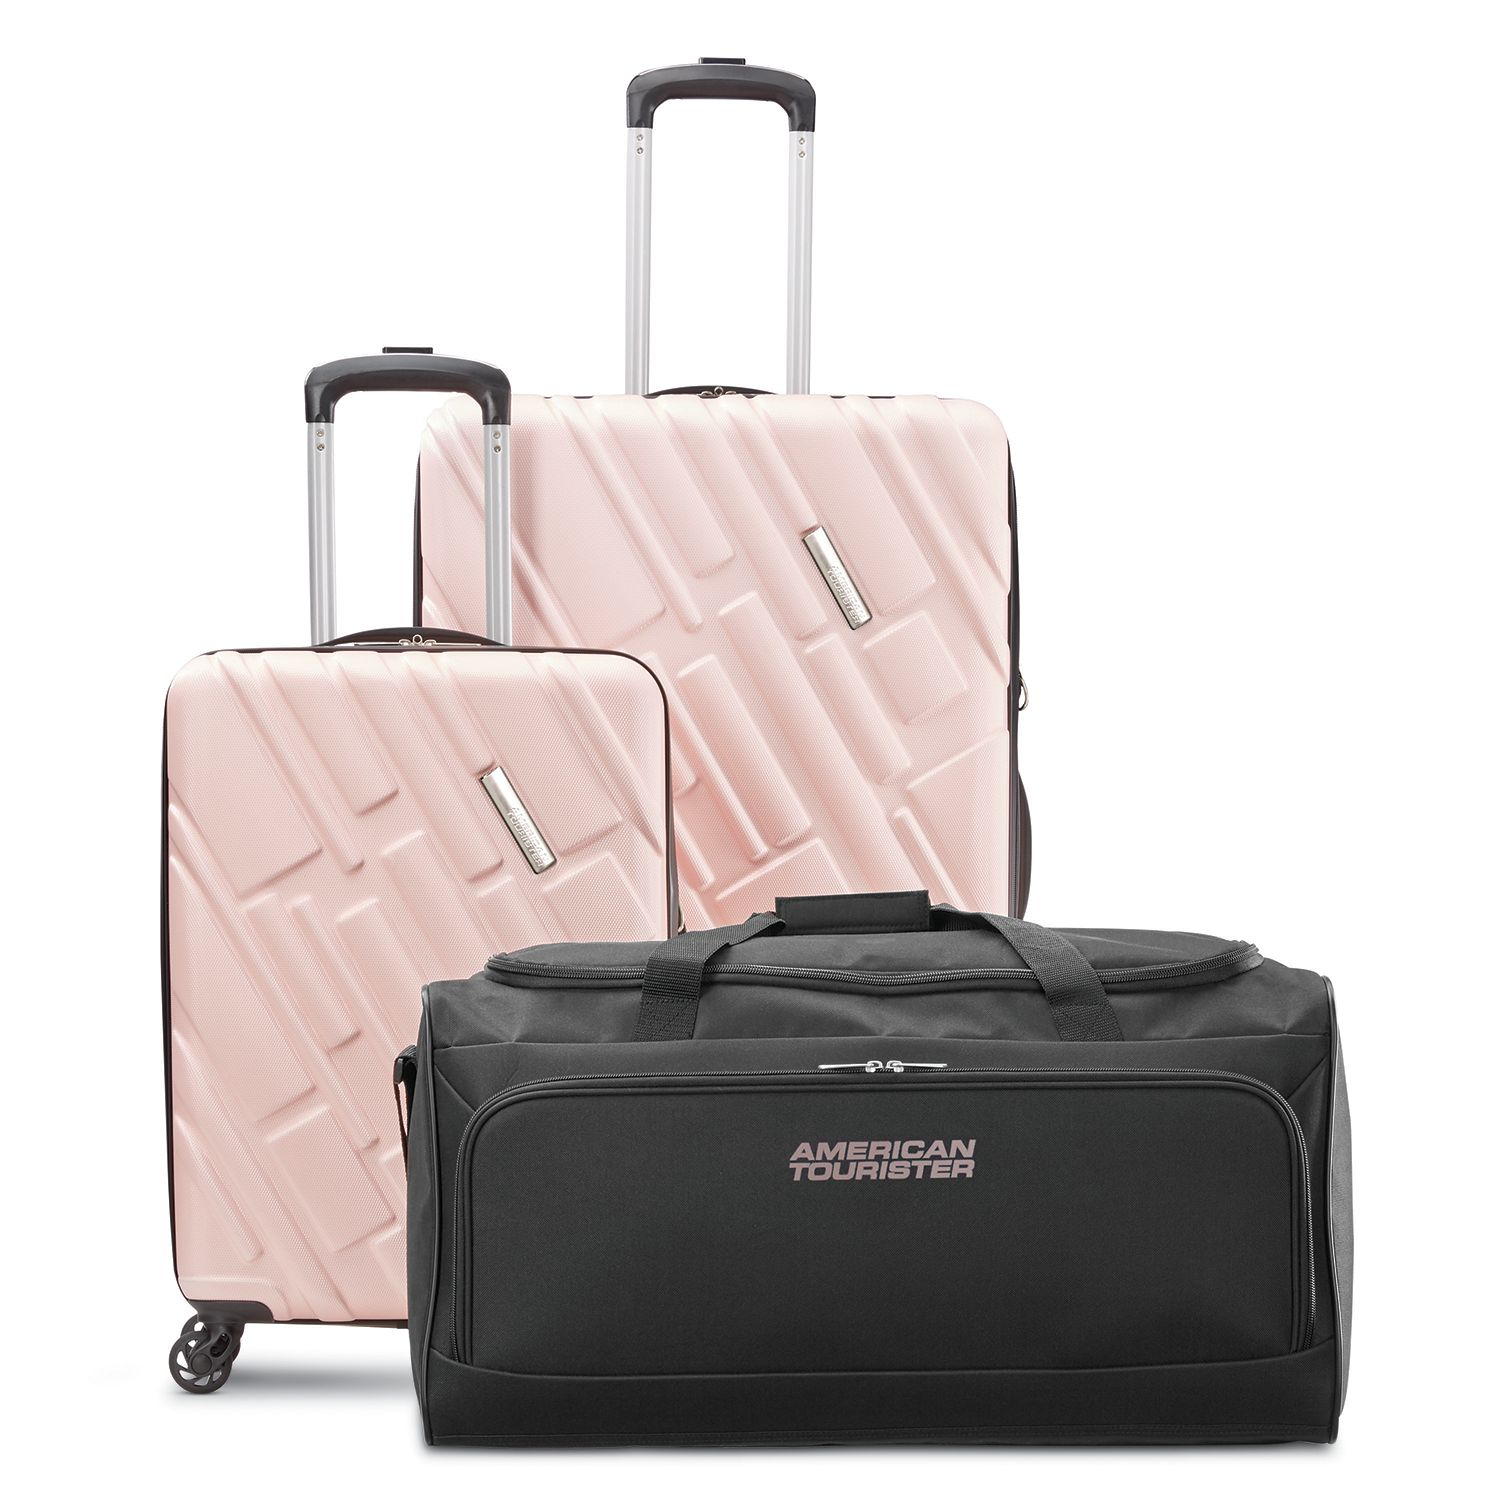 a6186f21e Luggage & Suitcases | Kohl's